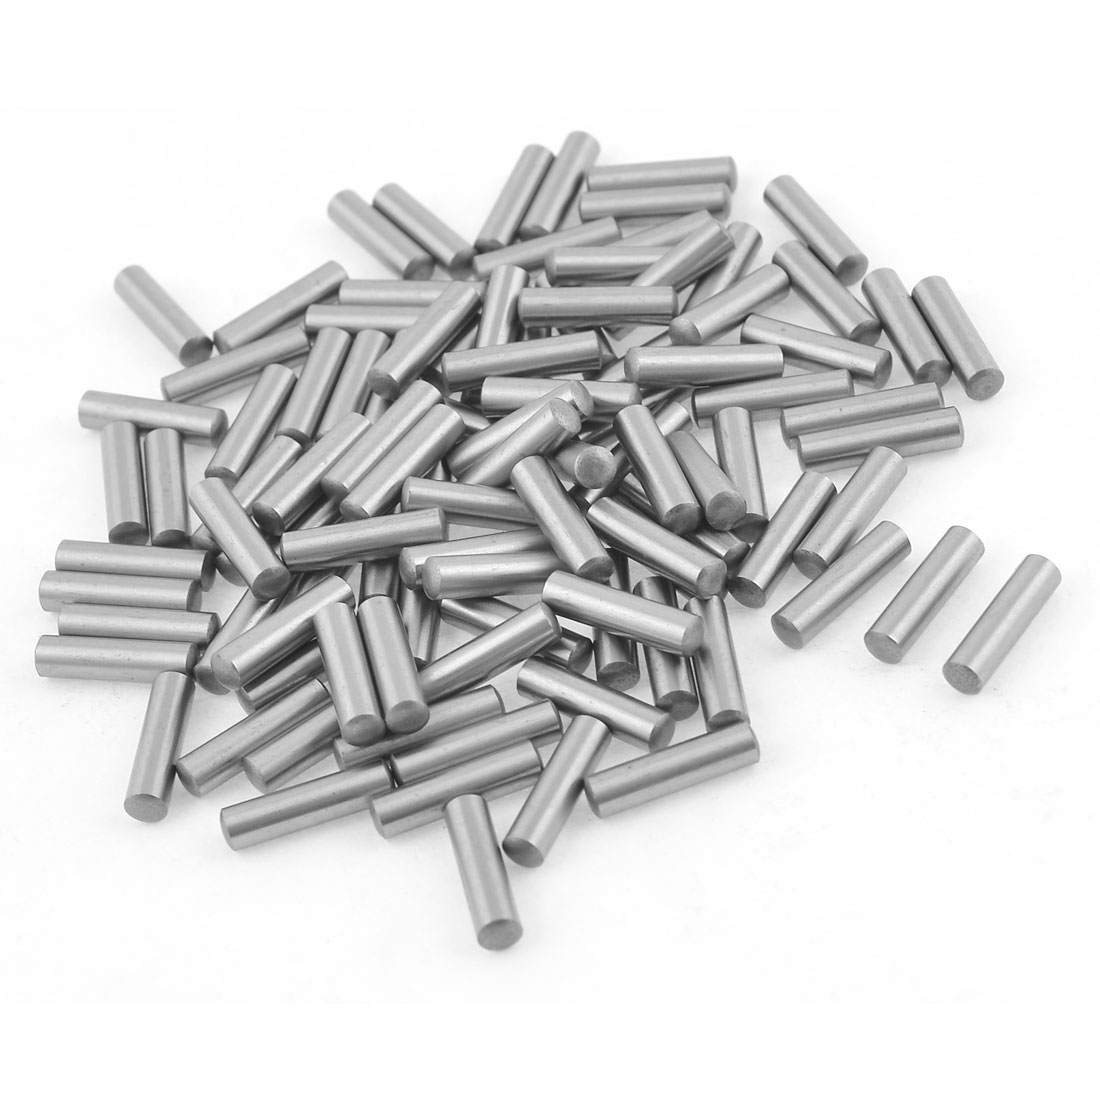 100 Pcs Stainless Steel 3.55mm x 15.8mm Dowel Pins Fasten Elements